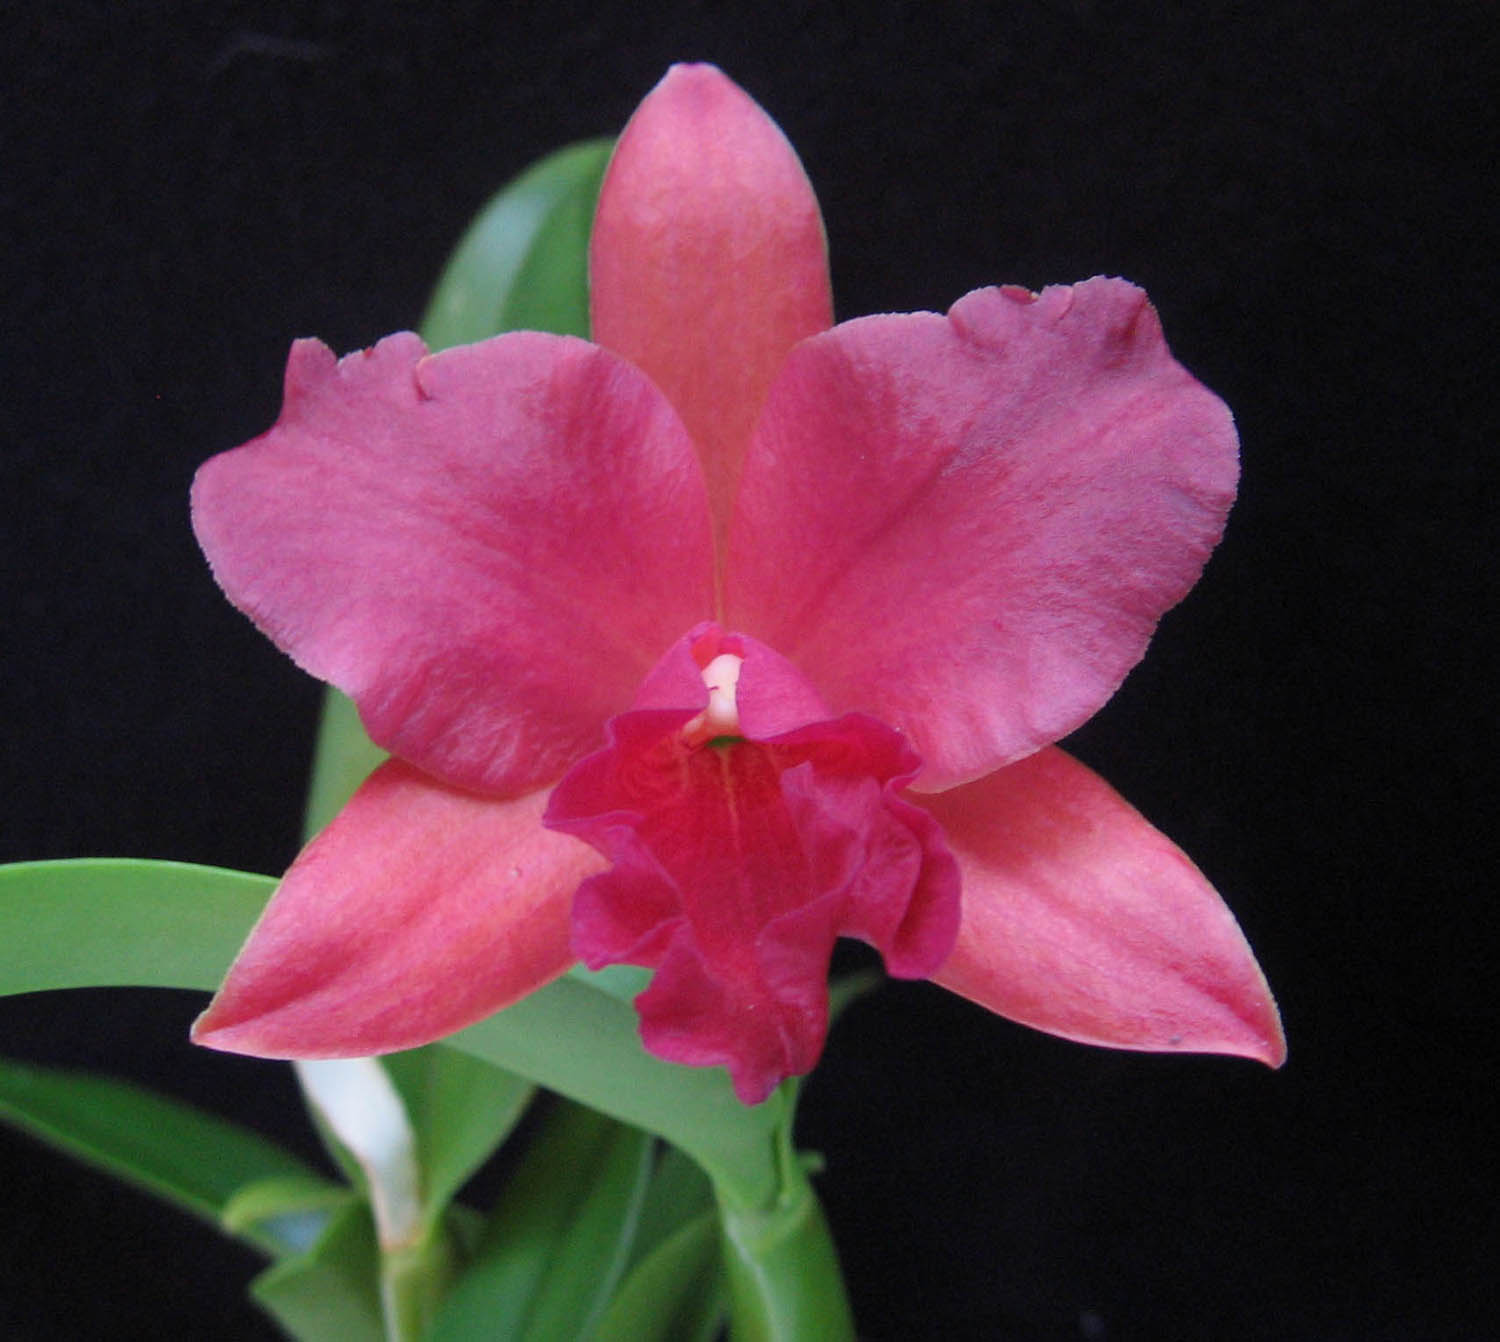 Perfume Project Nw Cattleya Orchids The Original Fruity Floral Scent